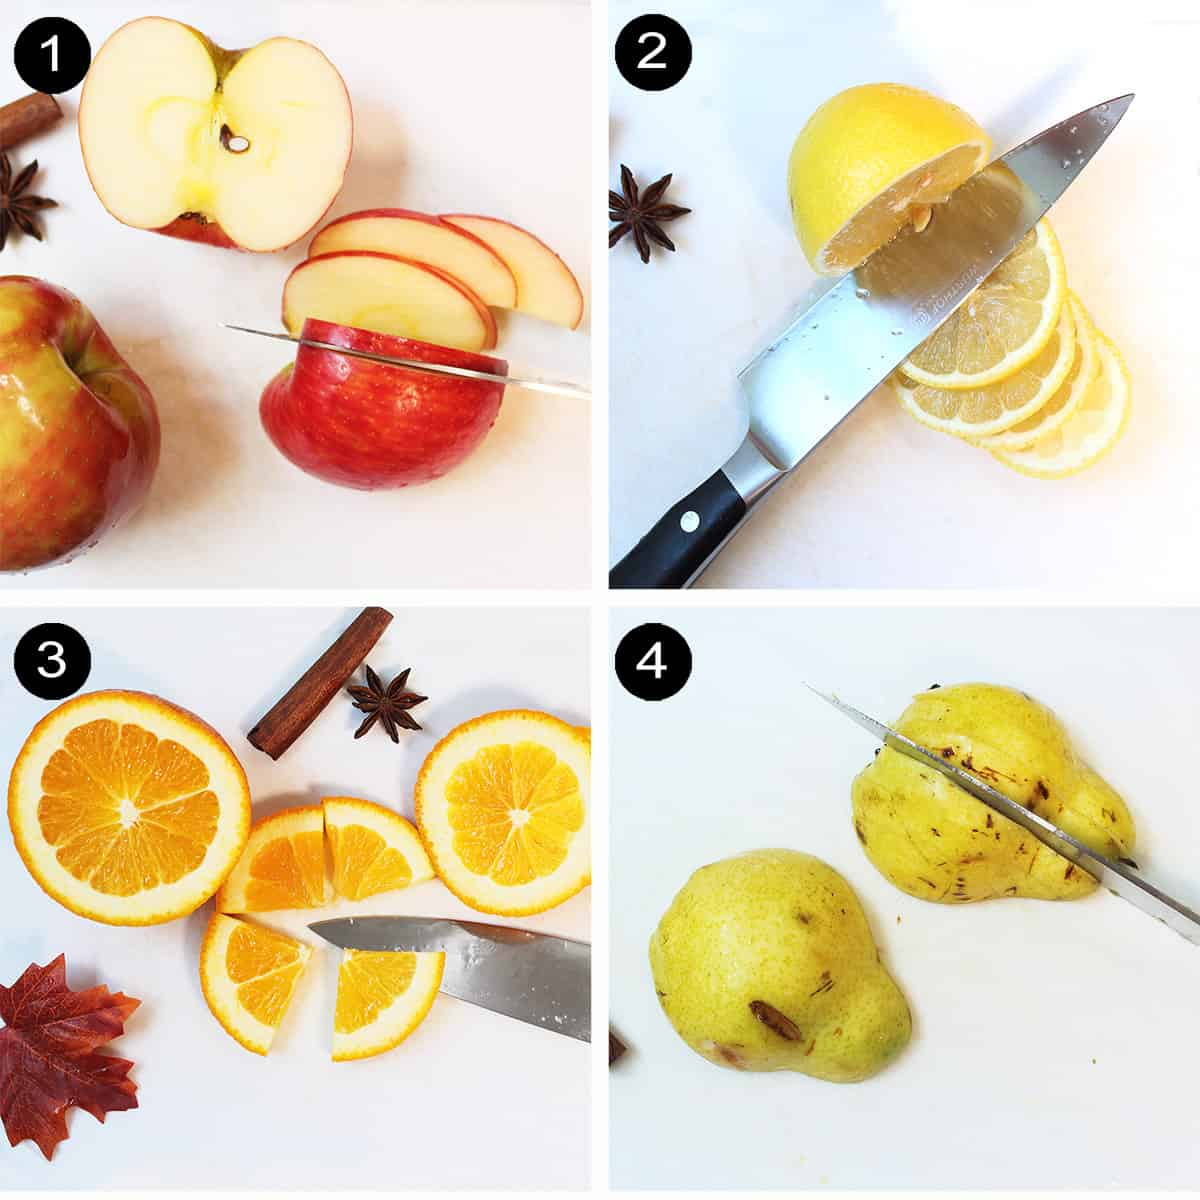 Collage of sliced fruits.